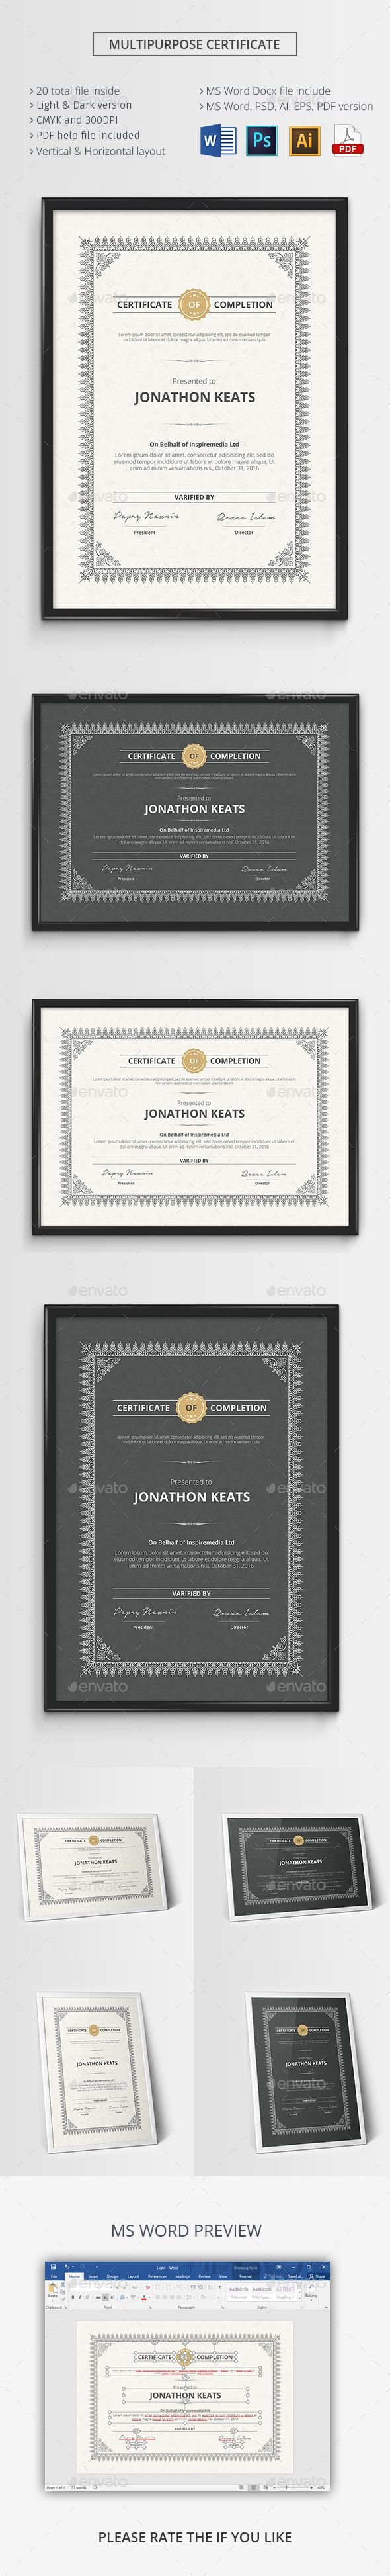 Best 25 certificate templates ideas on pinterest gift multipurpose certificate certificate templatescertificate yelopaper Choice Image